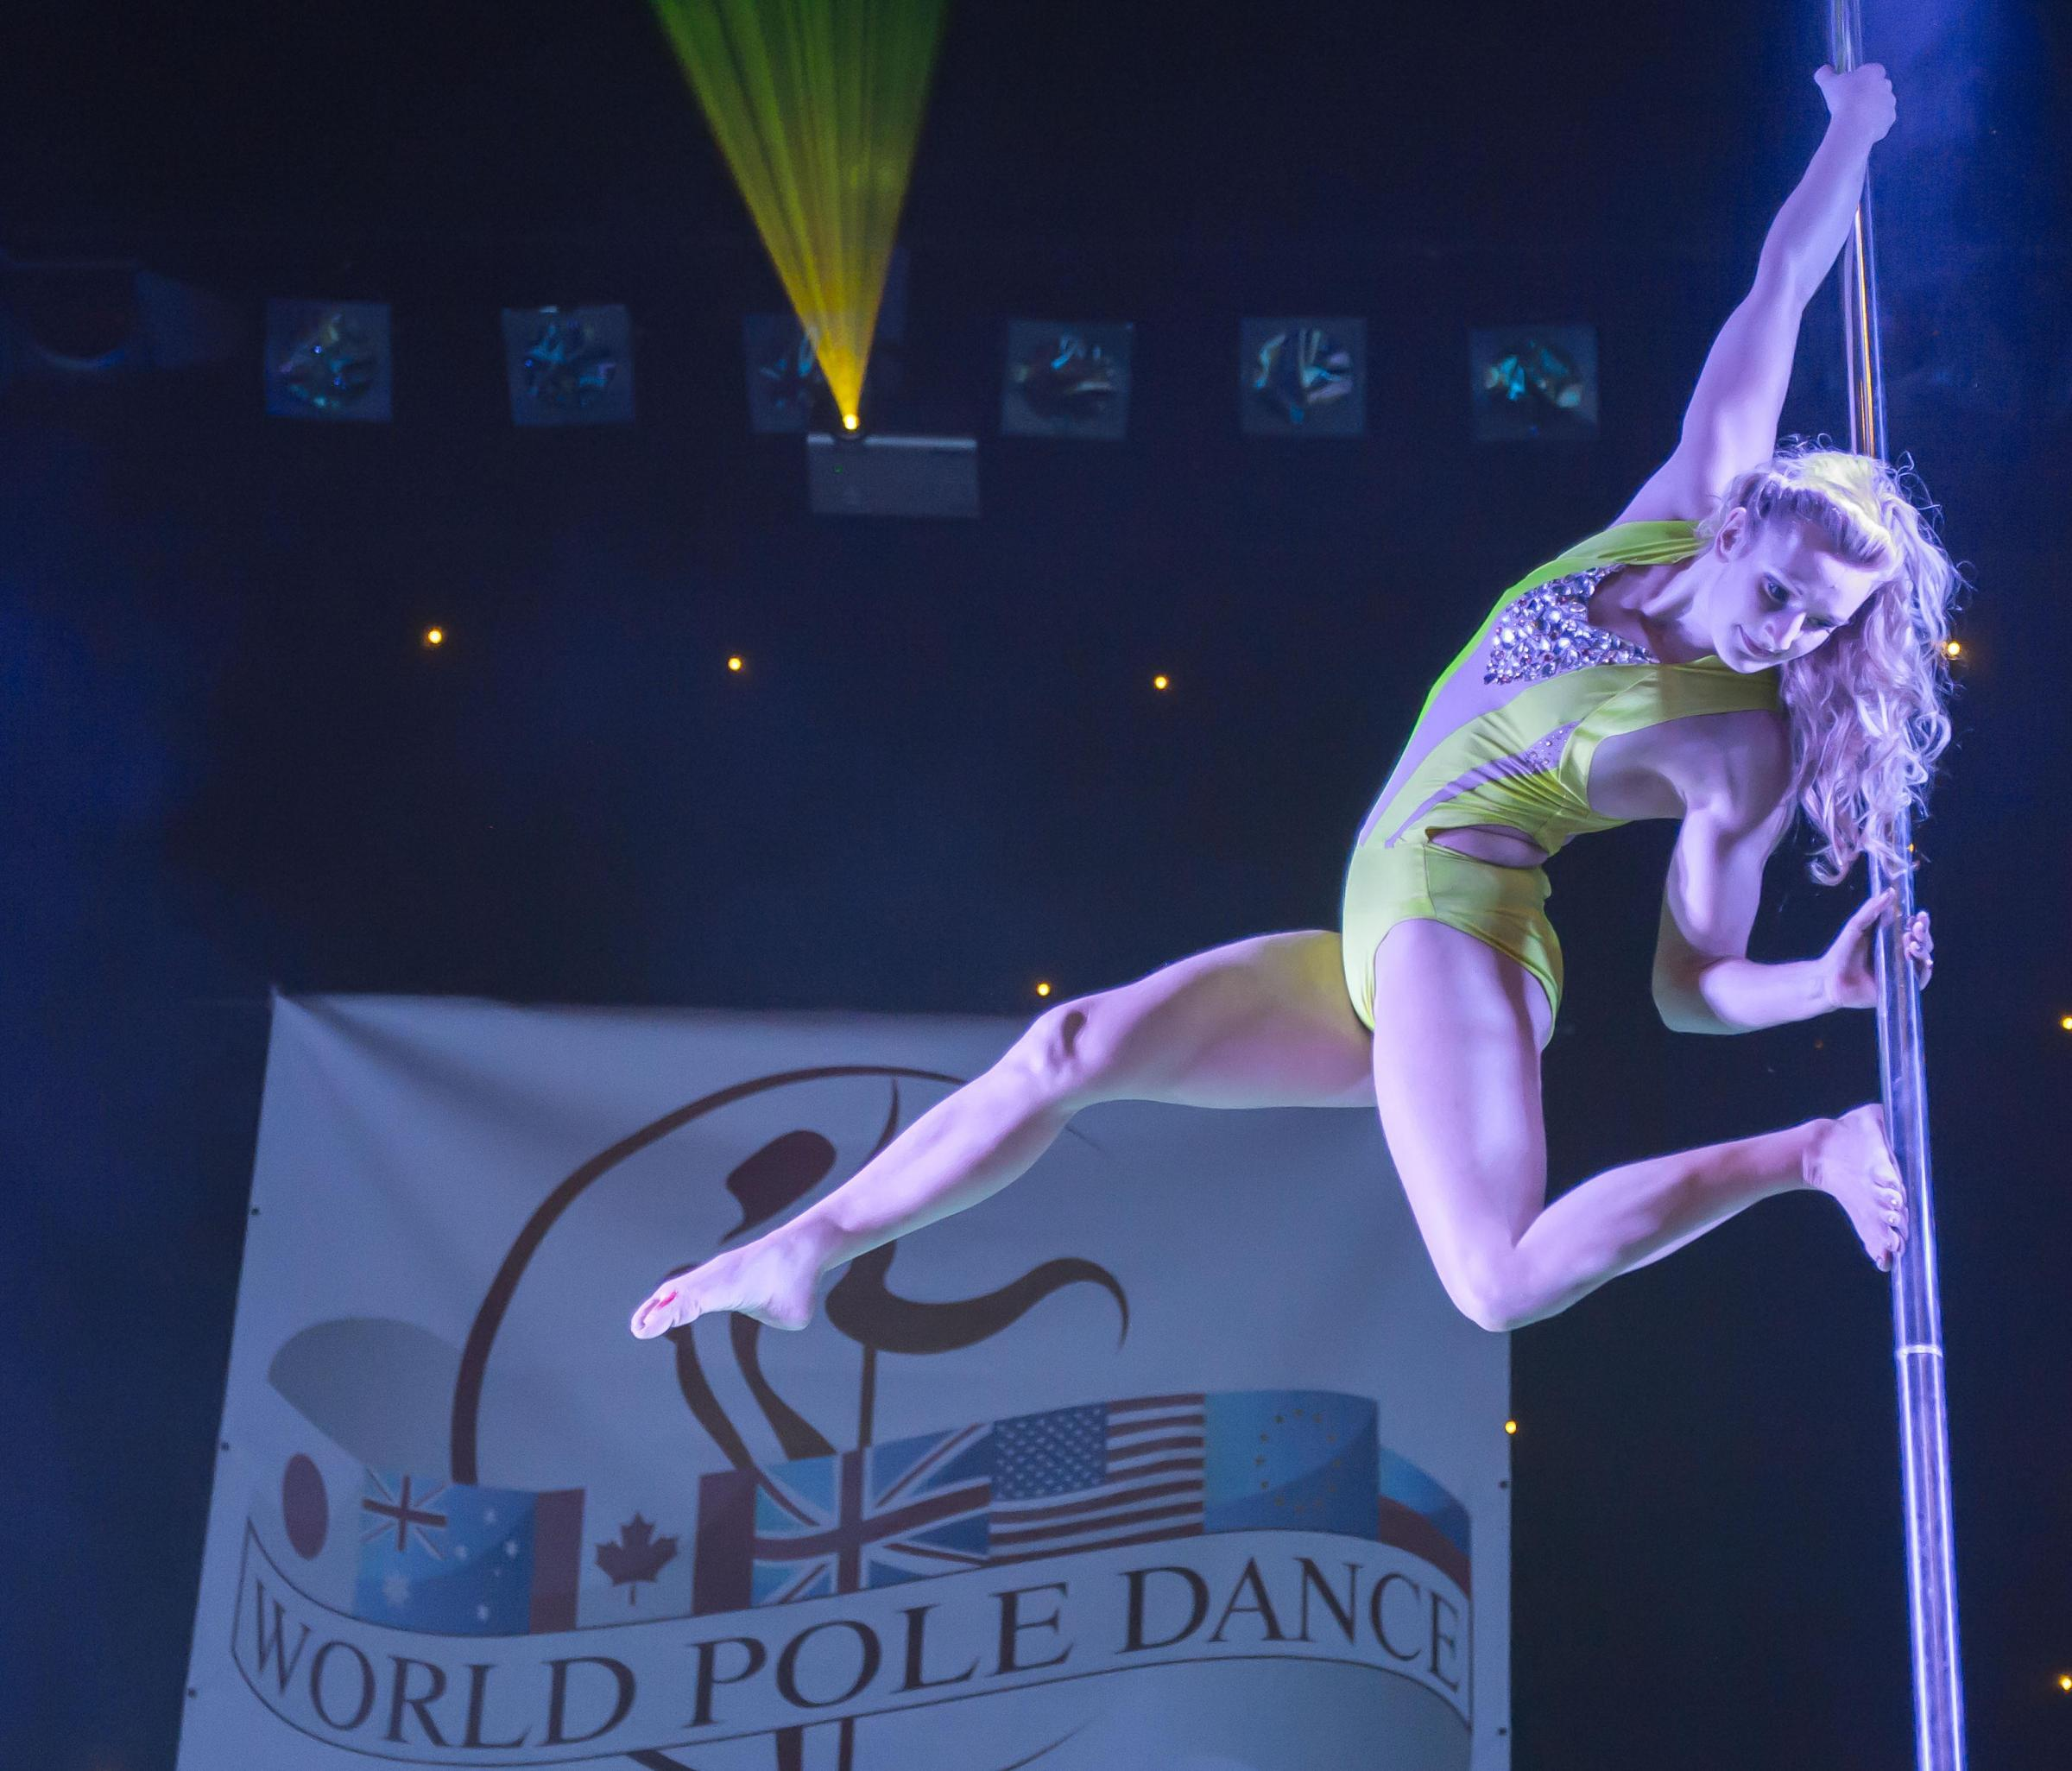 Pole dancers swing into Sussex theatre for world championships